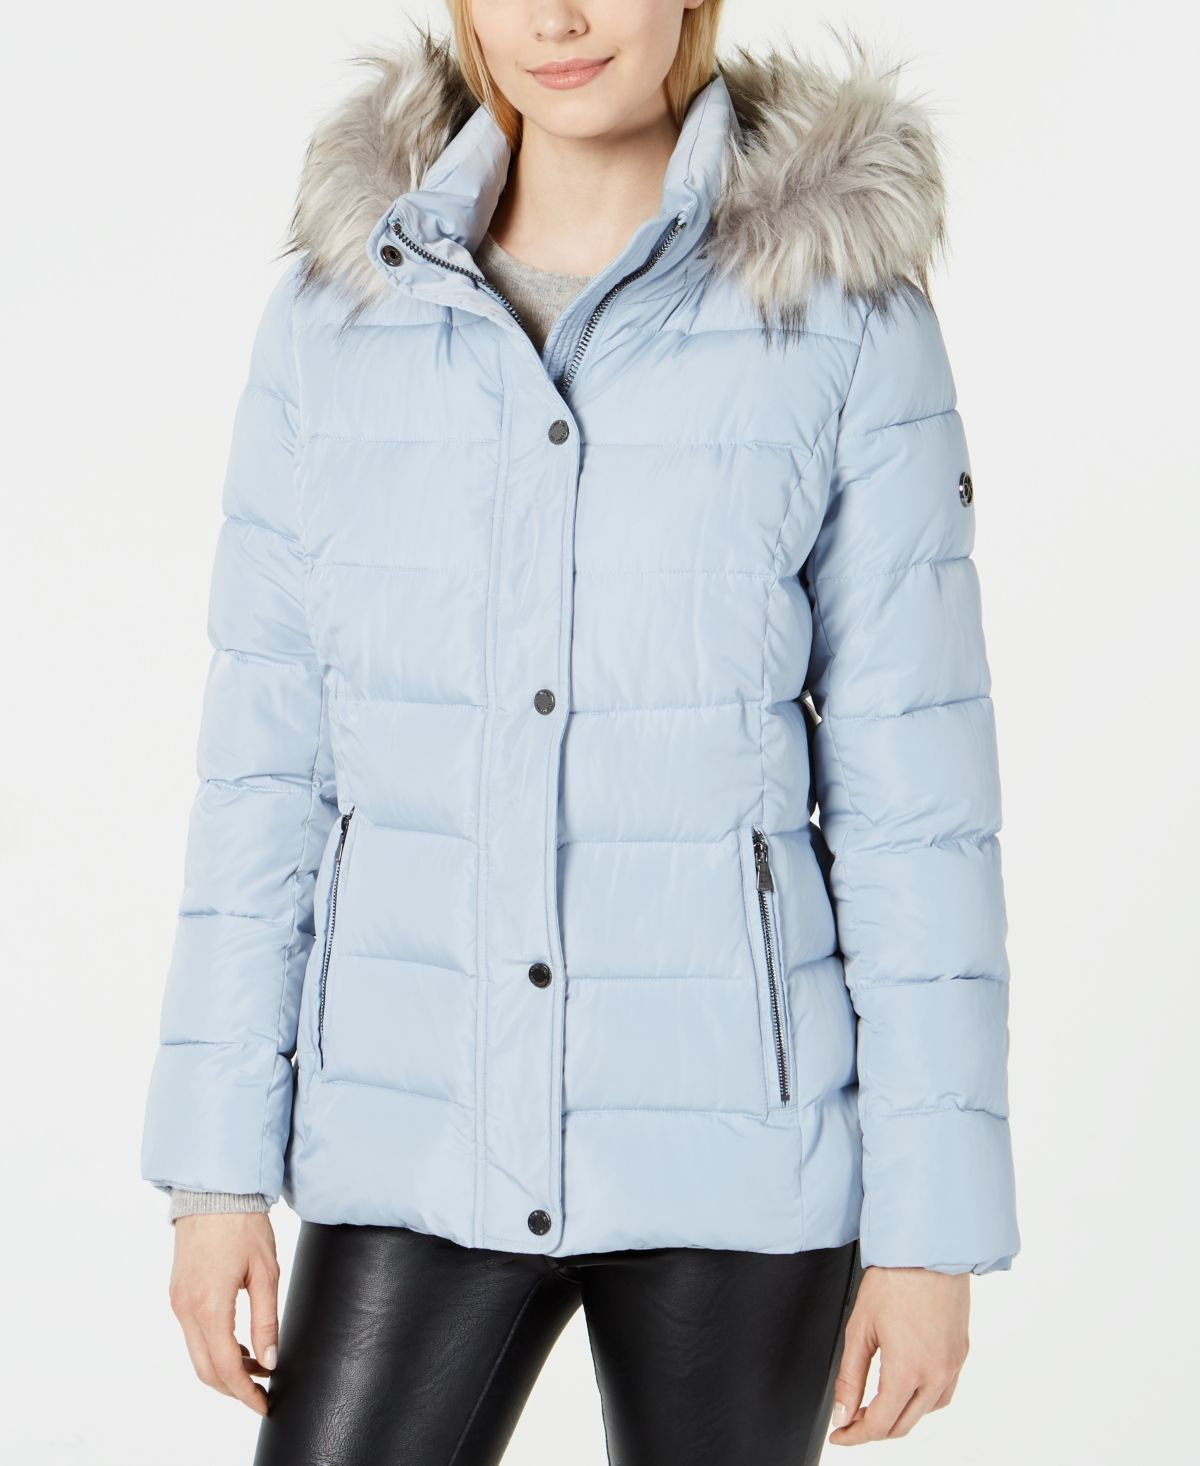 Calvin Klein Hooded Faux Fur Trim Puffer Coat Created For Macy S Powder Blue Hooded Faux Puffer Coat Big Clothes [ 1466 x 1200 Pixel ]